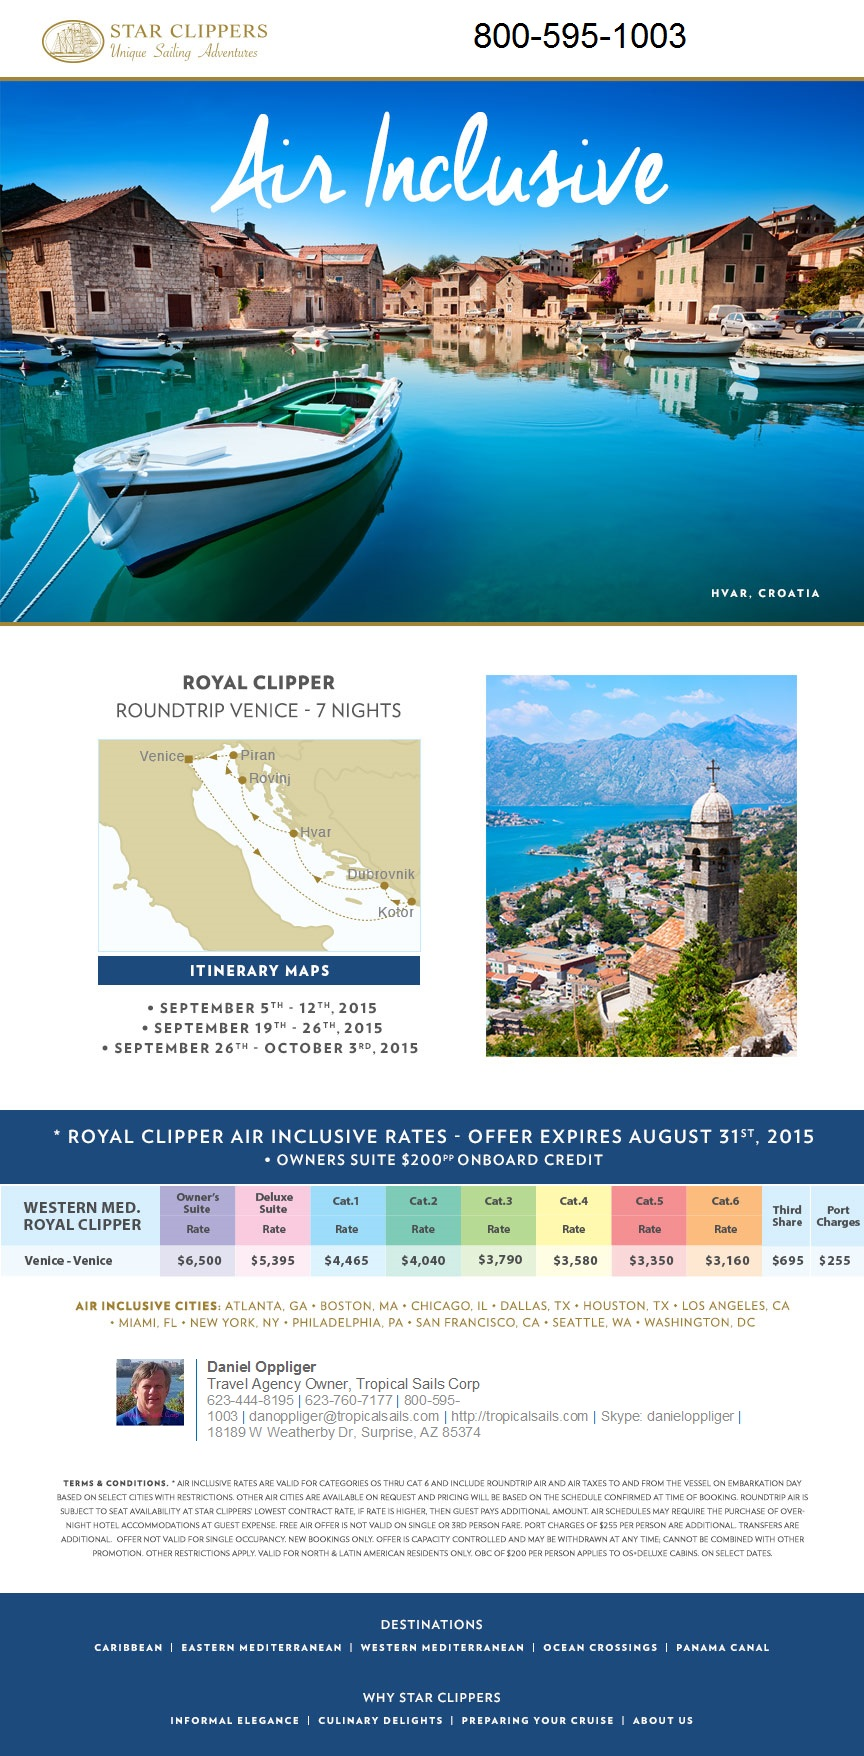 Royal Clipper Venice Sicily Cruise Package cruise packages Star Clippers European Cruise Packages royal clipper venice sicily cruise package